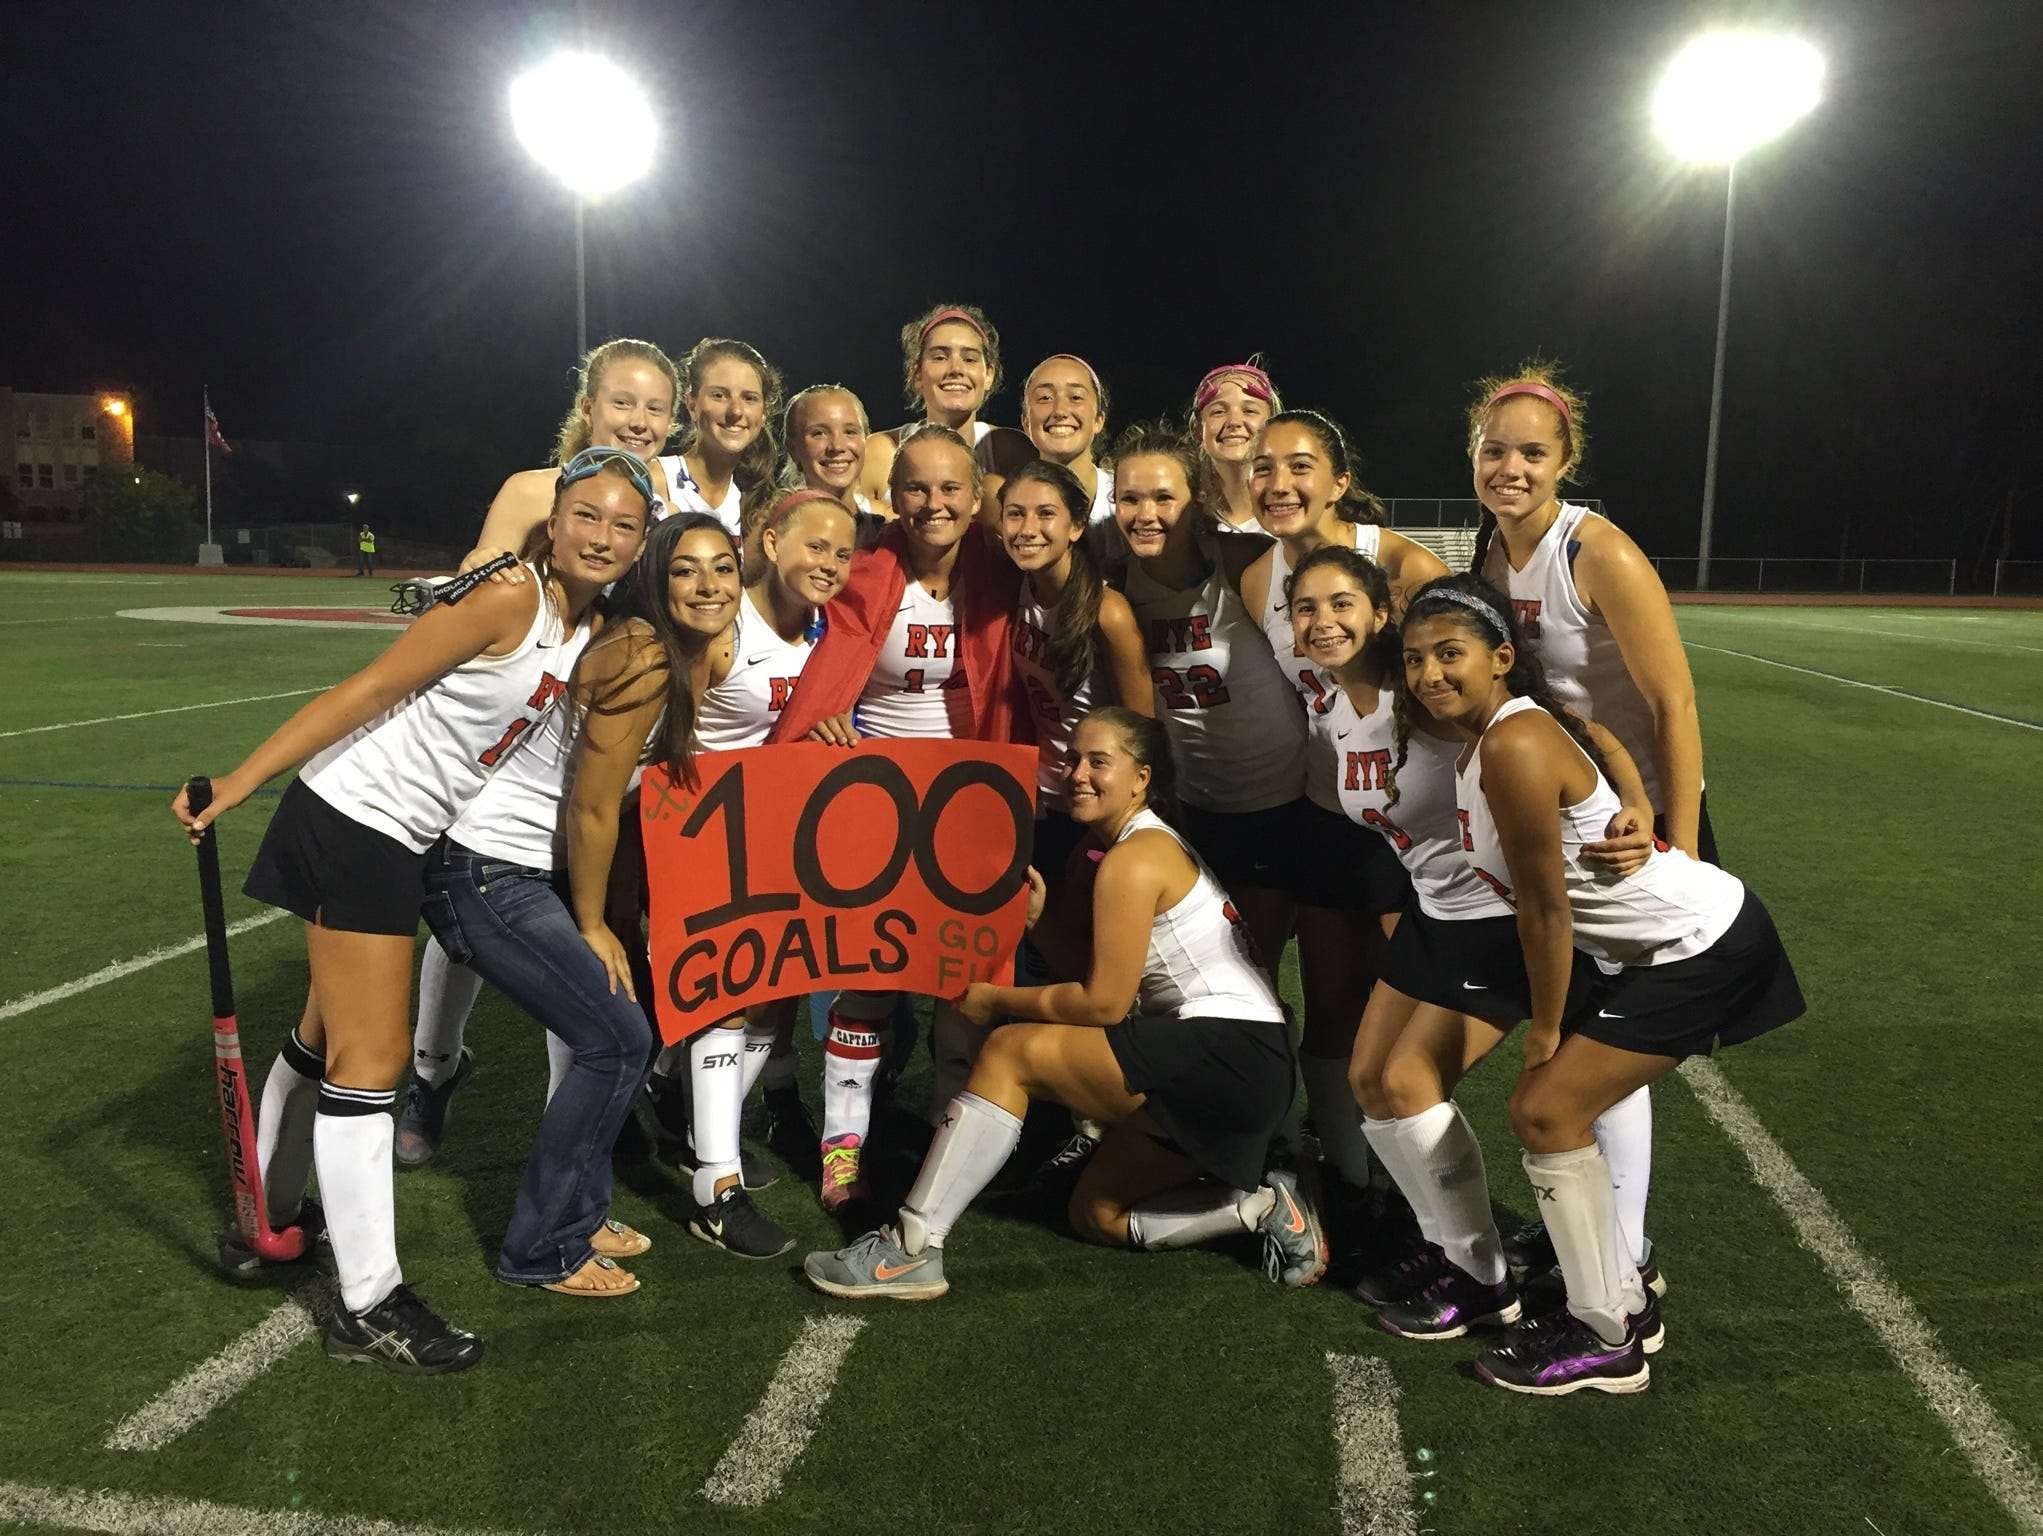 Rye players celebrate teammate Fuseine Govaert's (C) 100th career goal Saturday night. Govaert got the milestone with a hat trick in a 4-2 win against Bronxville..